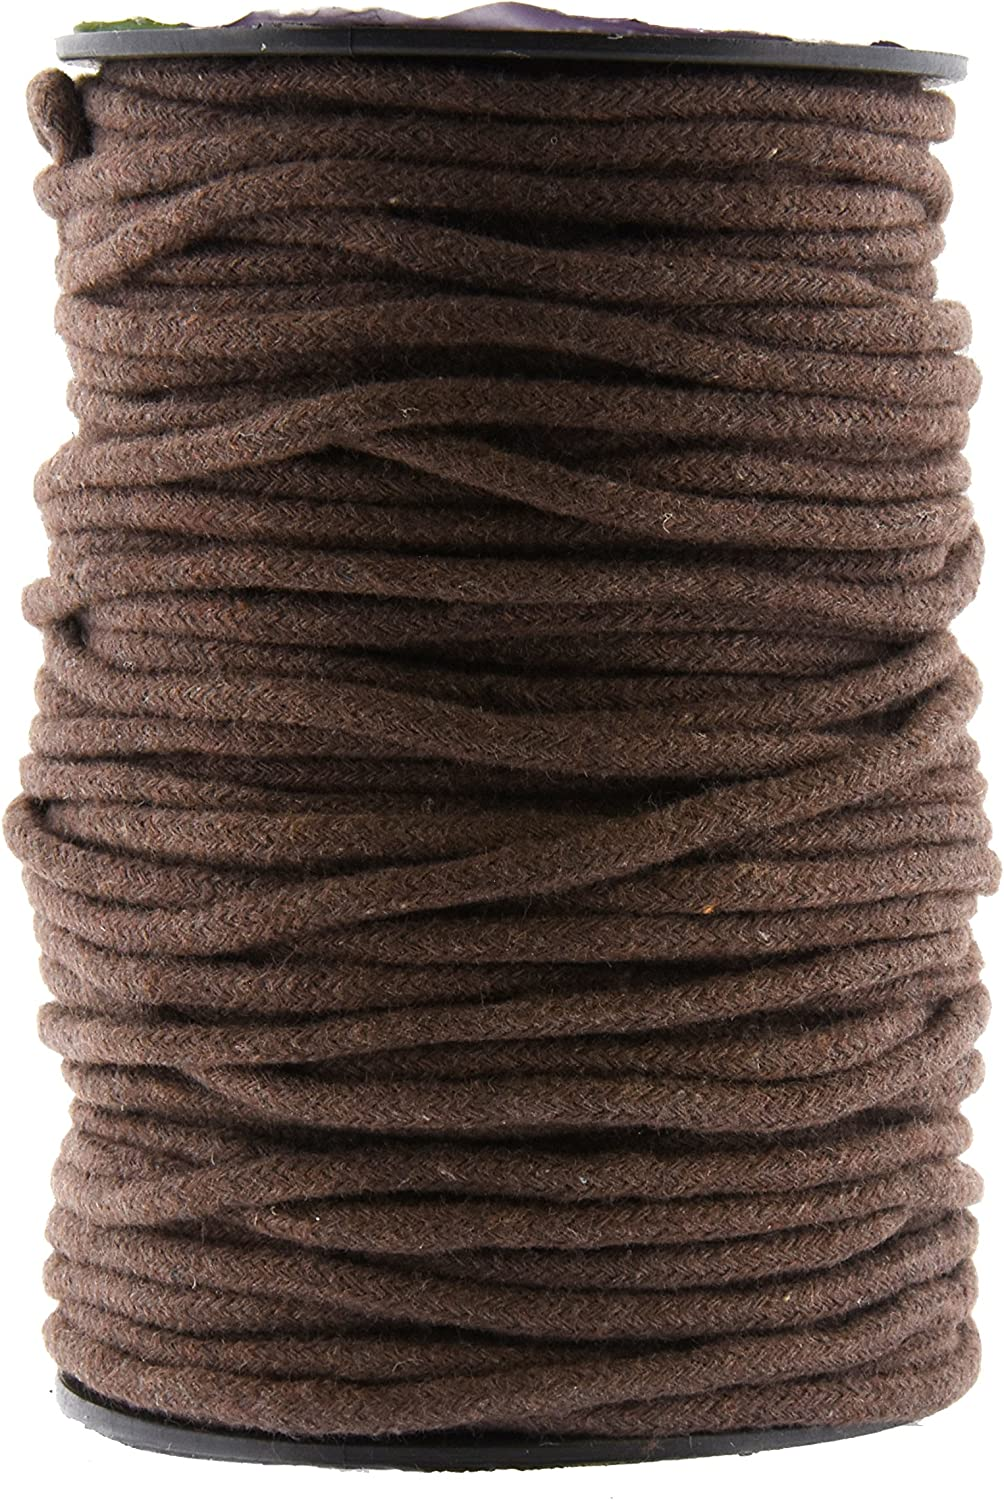 Natural Cotton Twine Braided Rope Piping Cord Sash String Craft T